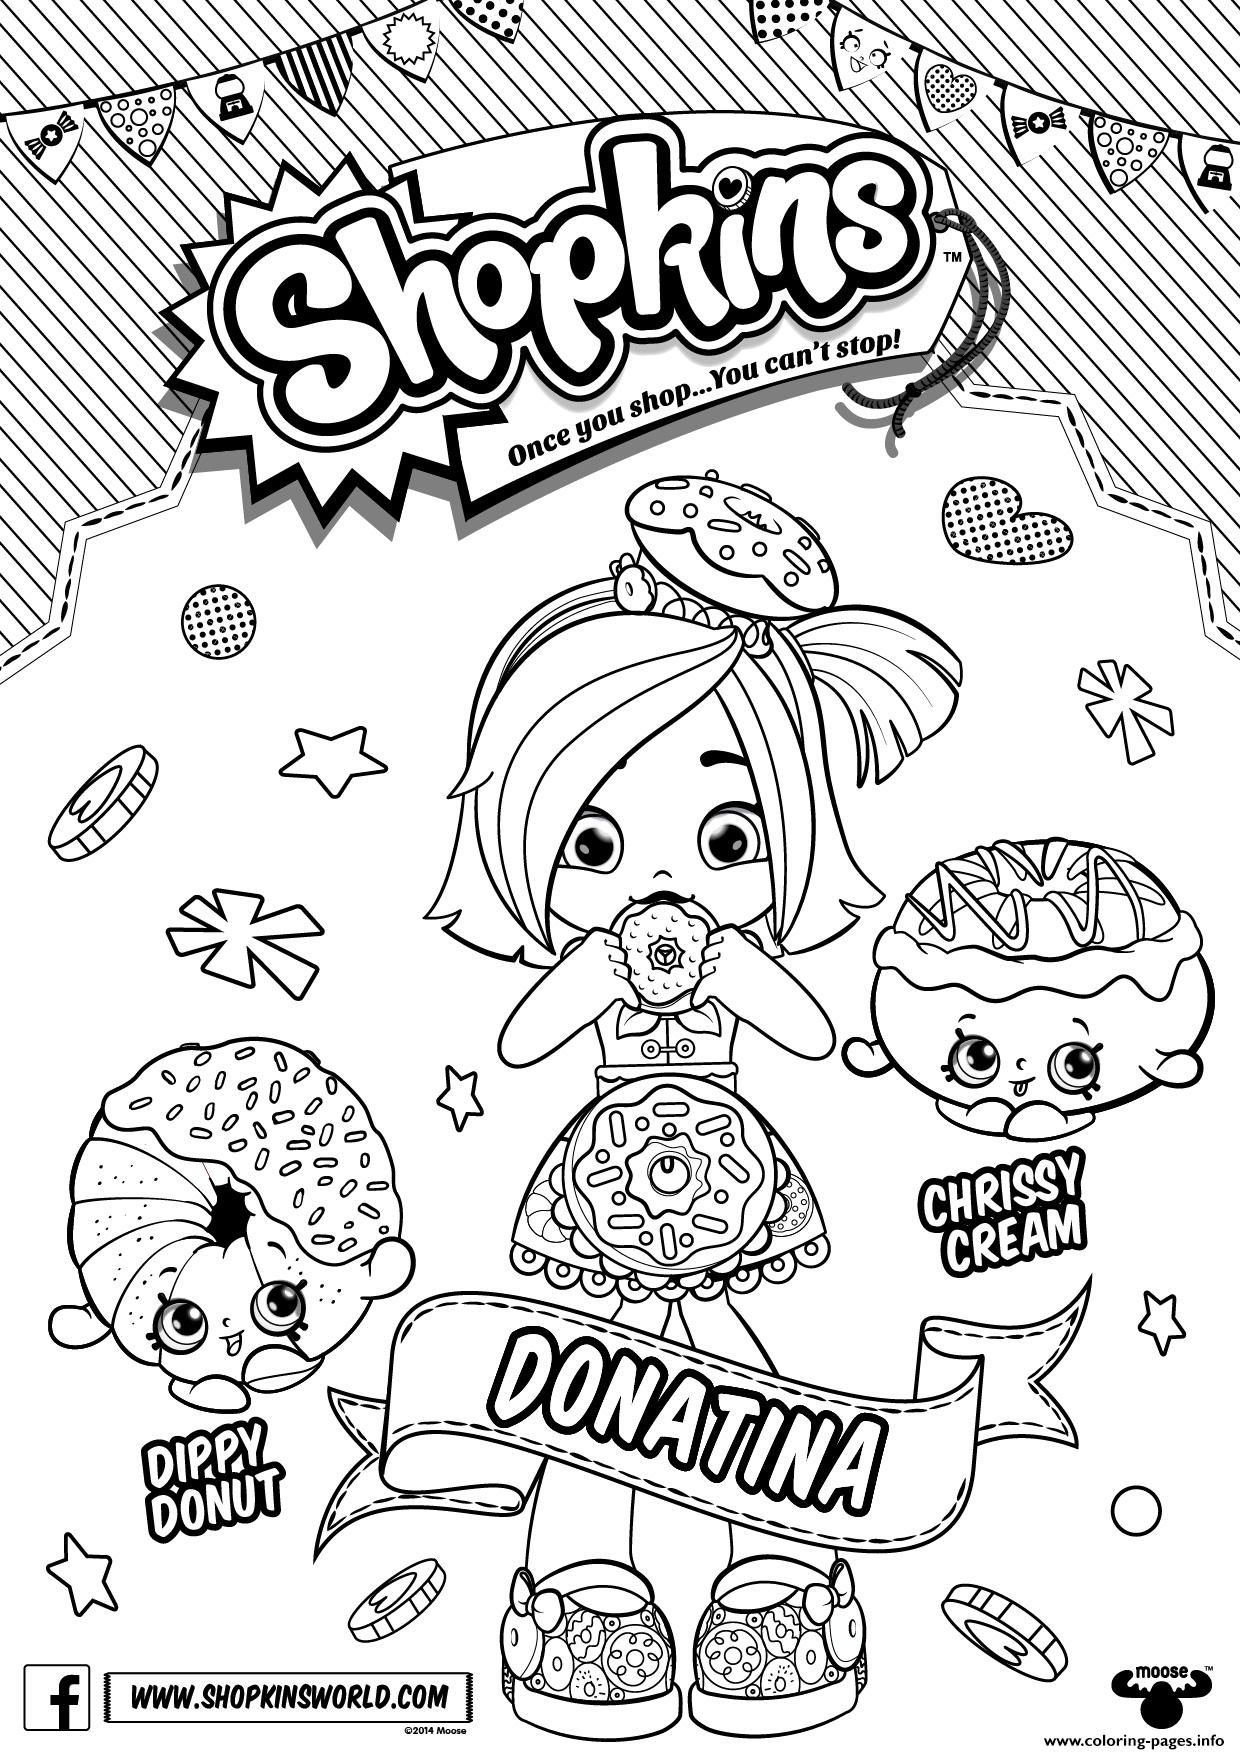 Shopkins Logo Coloring Pages Collection Shopkins Colouring Pages Cute Coloring Pages Shopkin Coloring Pages